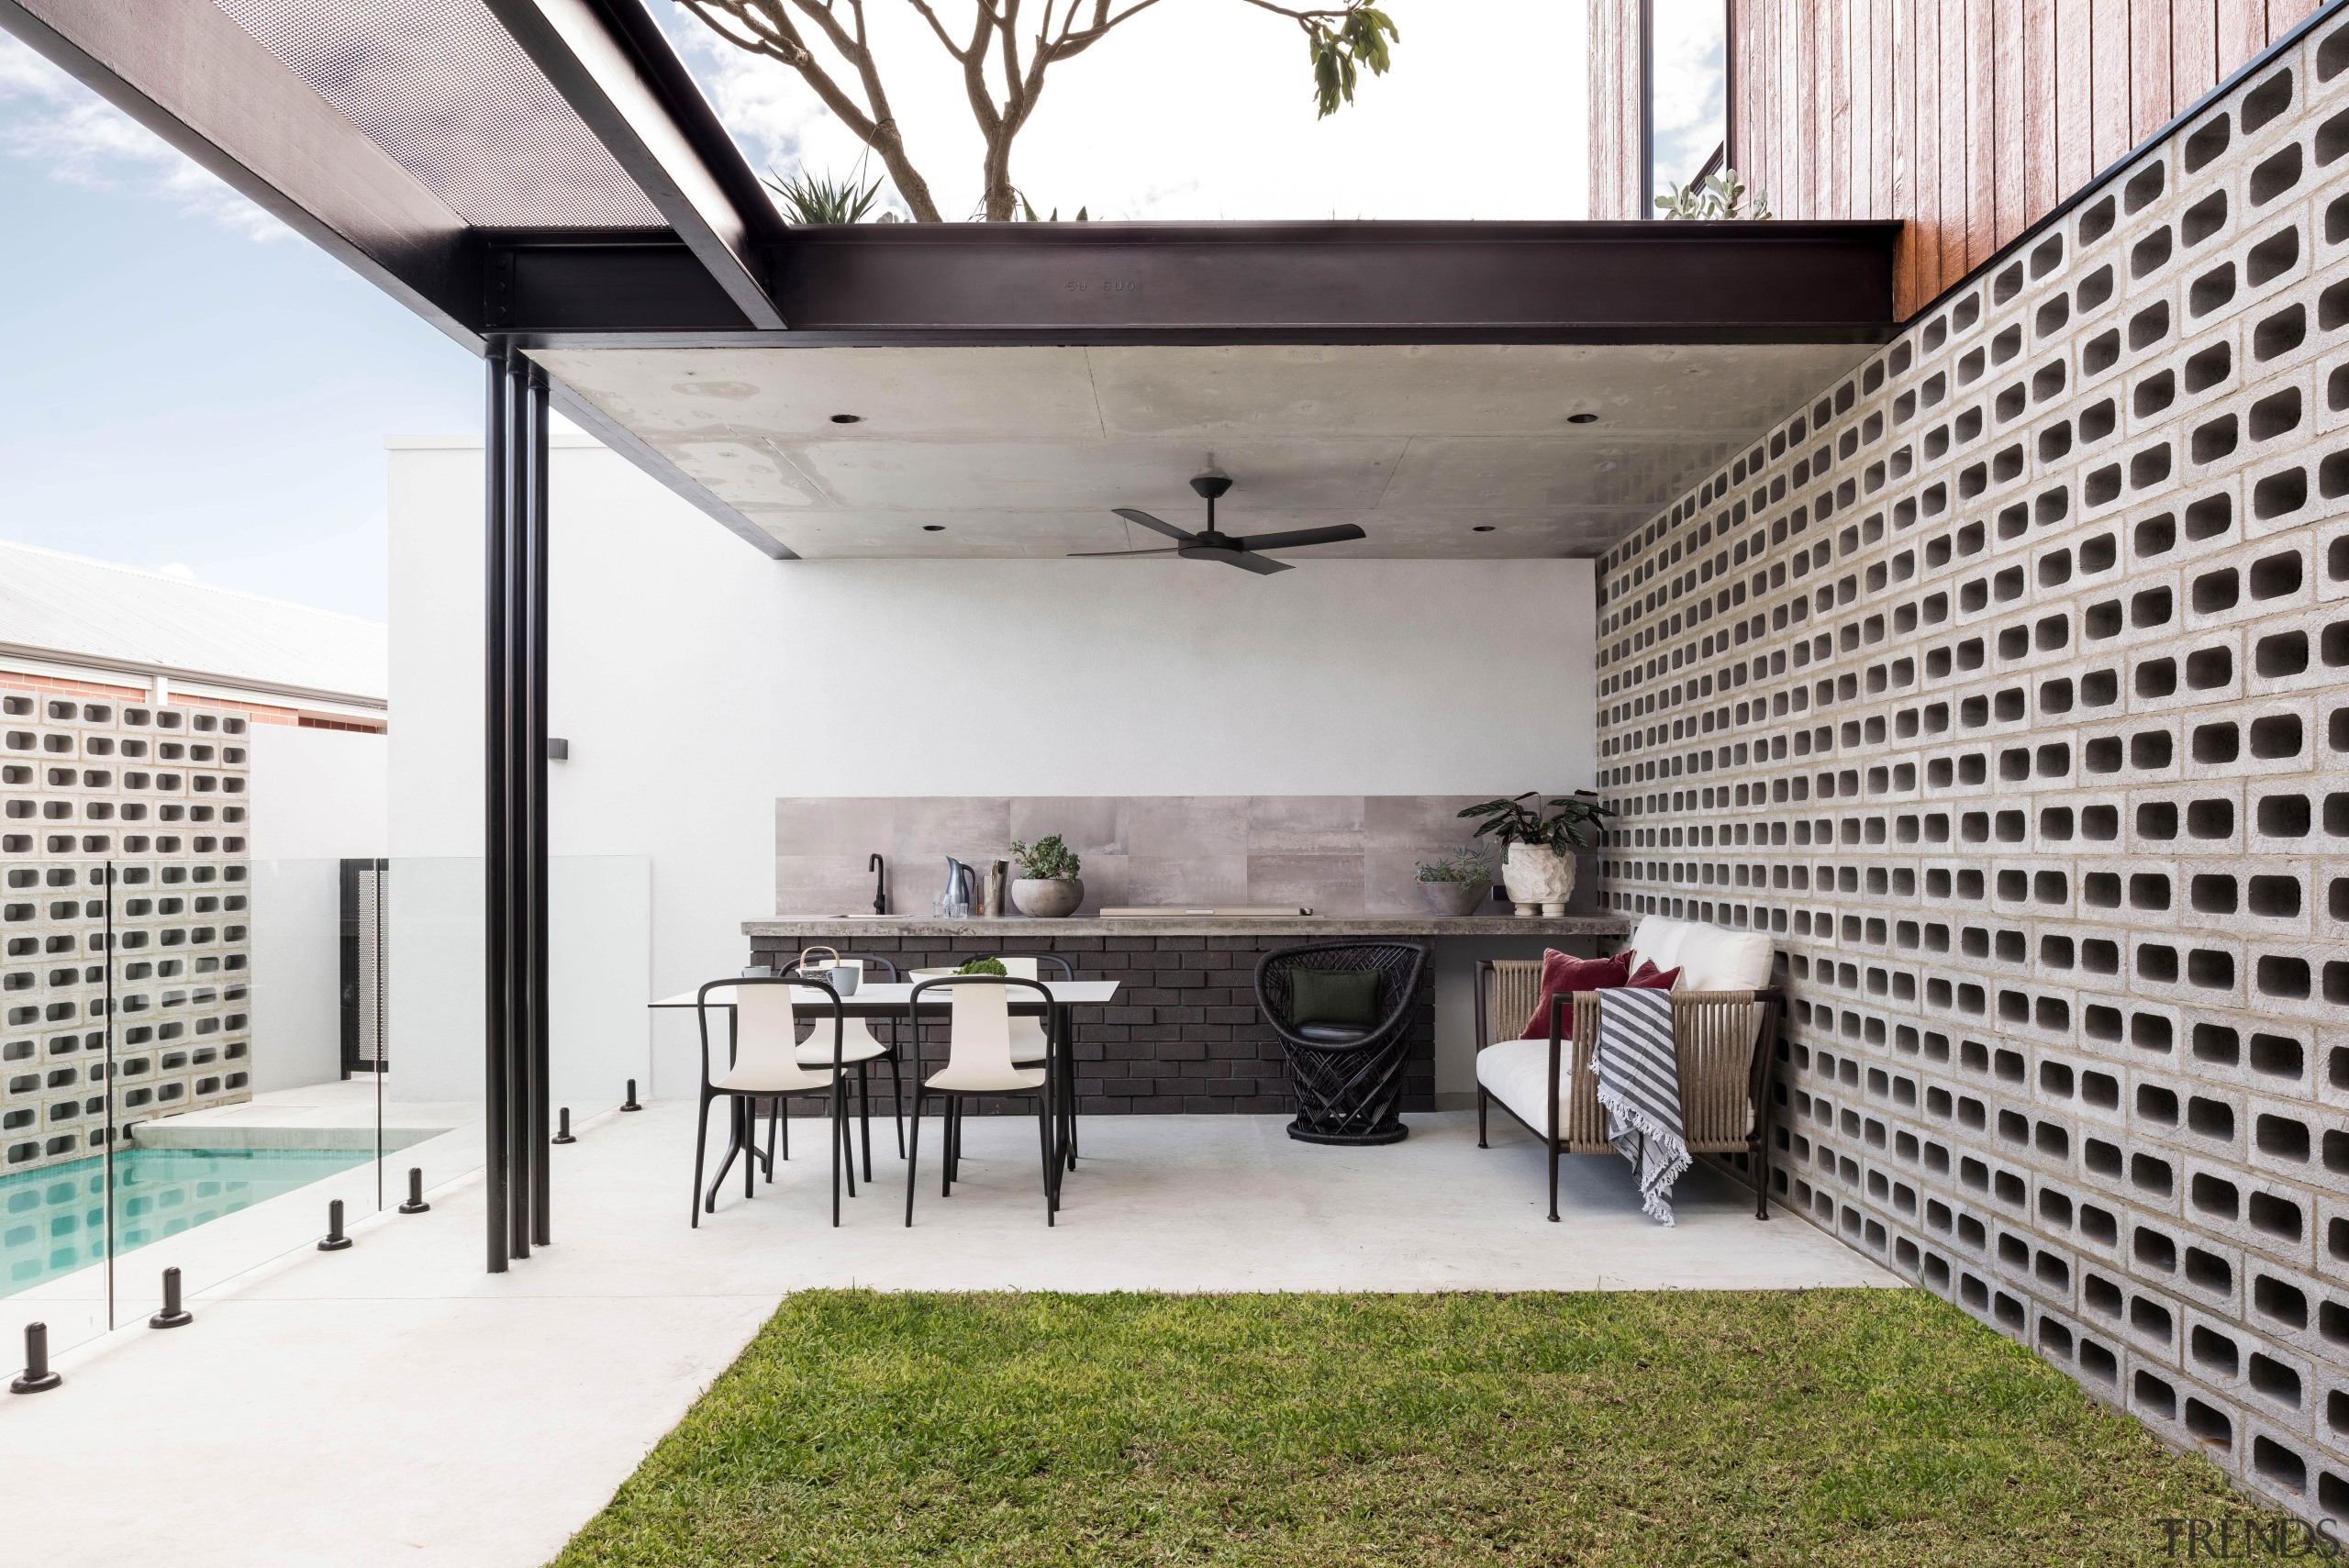 This alfresco dining area features materials such as architecture, alfrsco dining, design, furniture, home, house, interior design